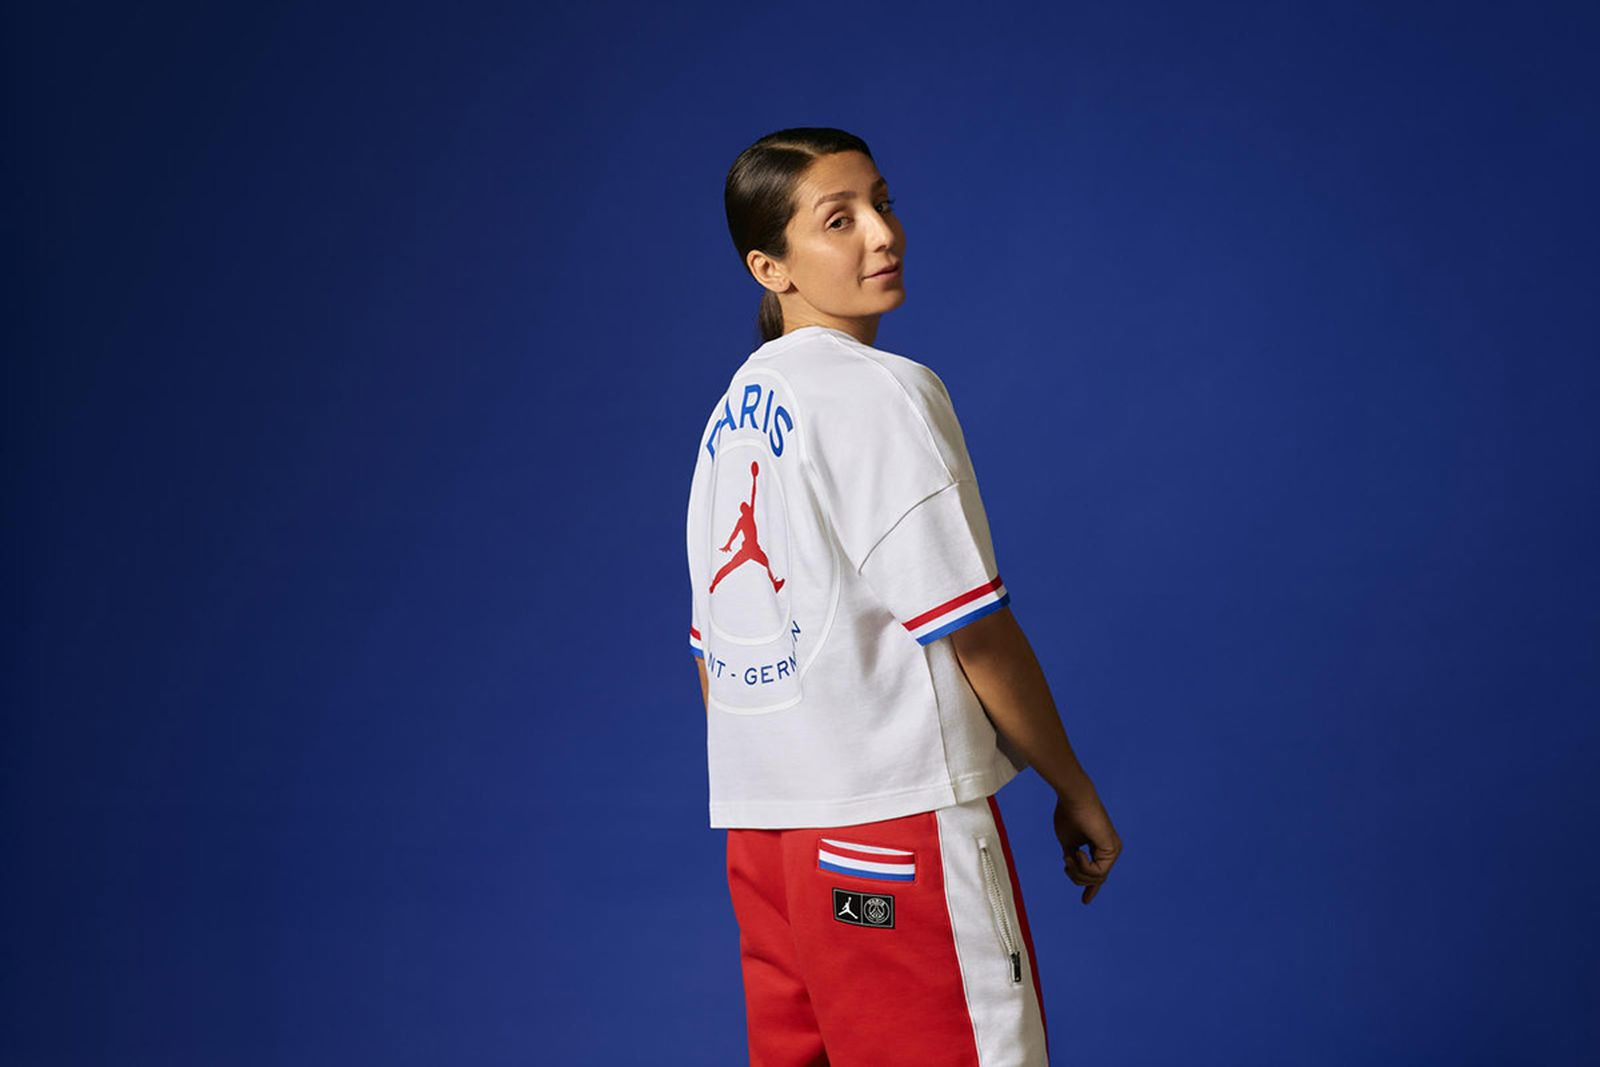 Jordan Brand Paris Saint-Germain Women's Collection